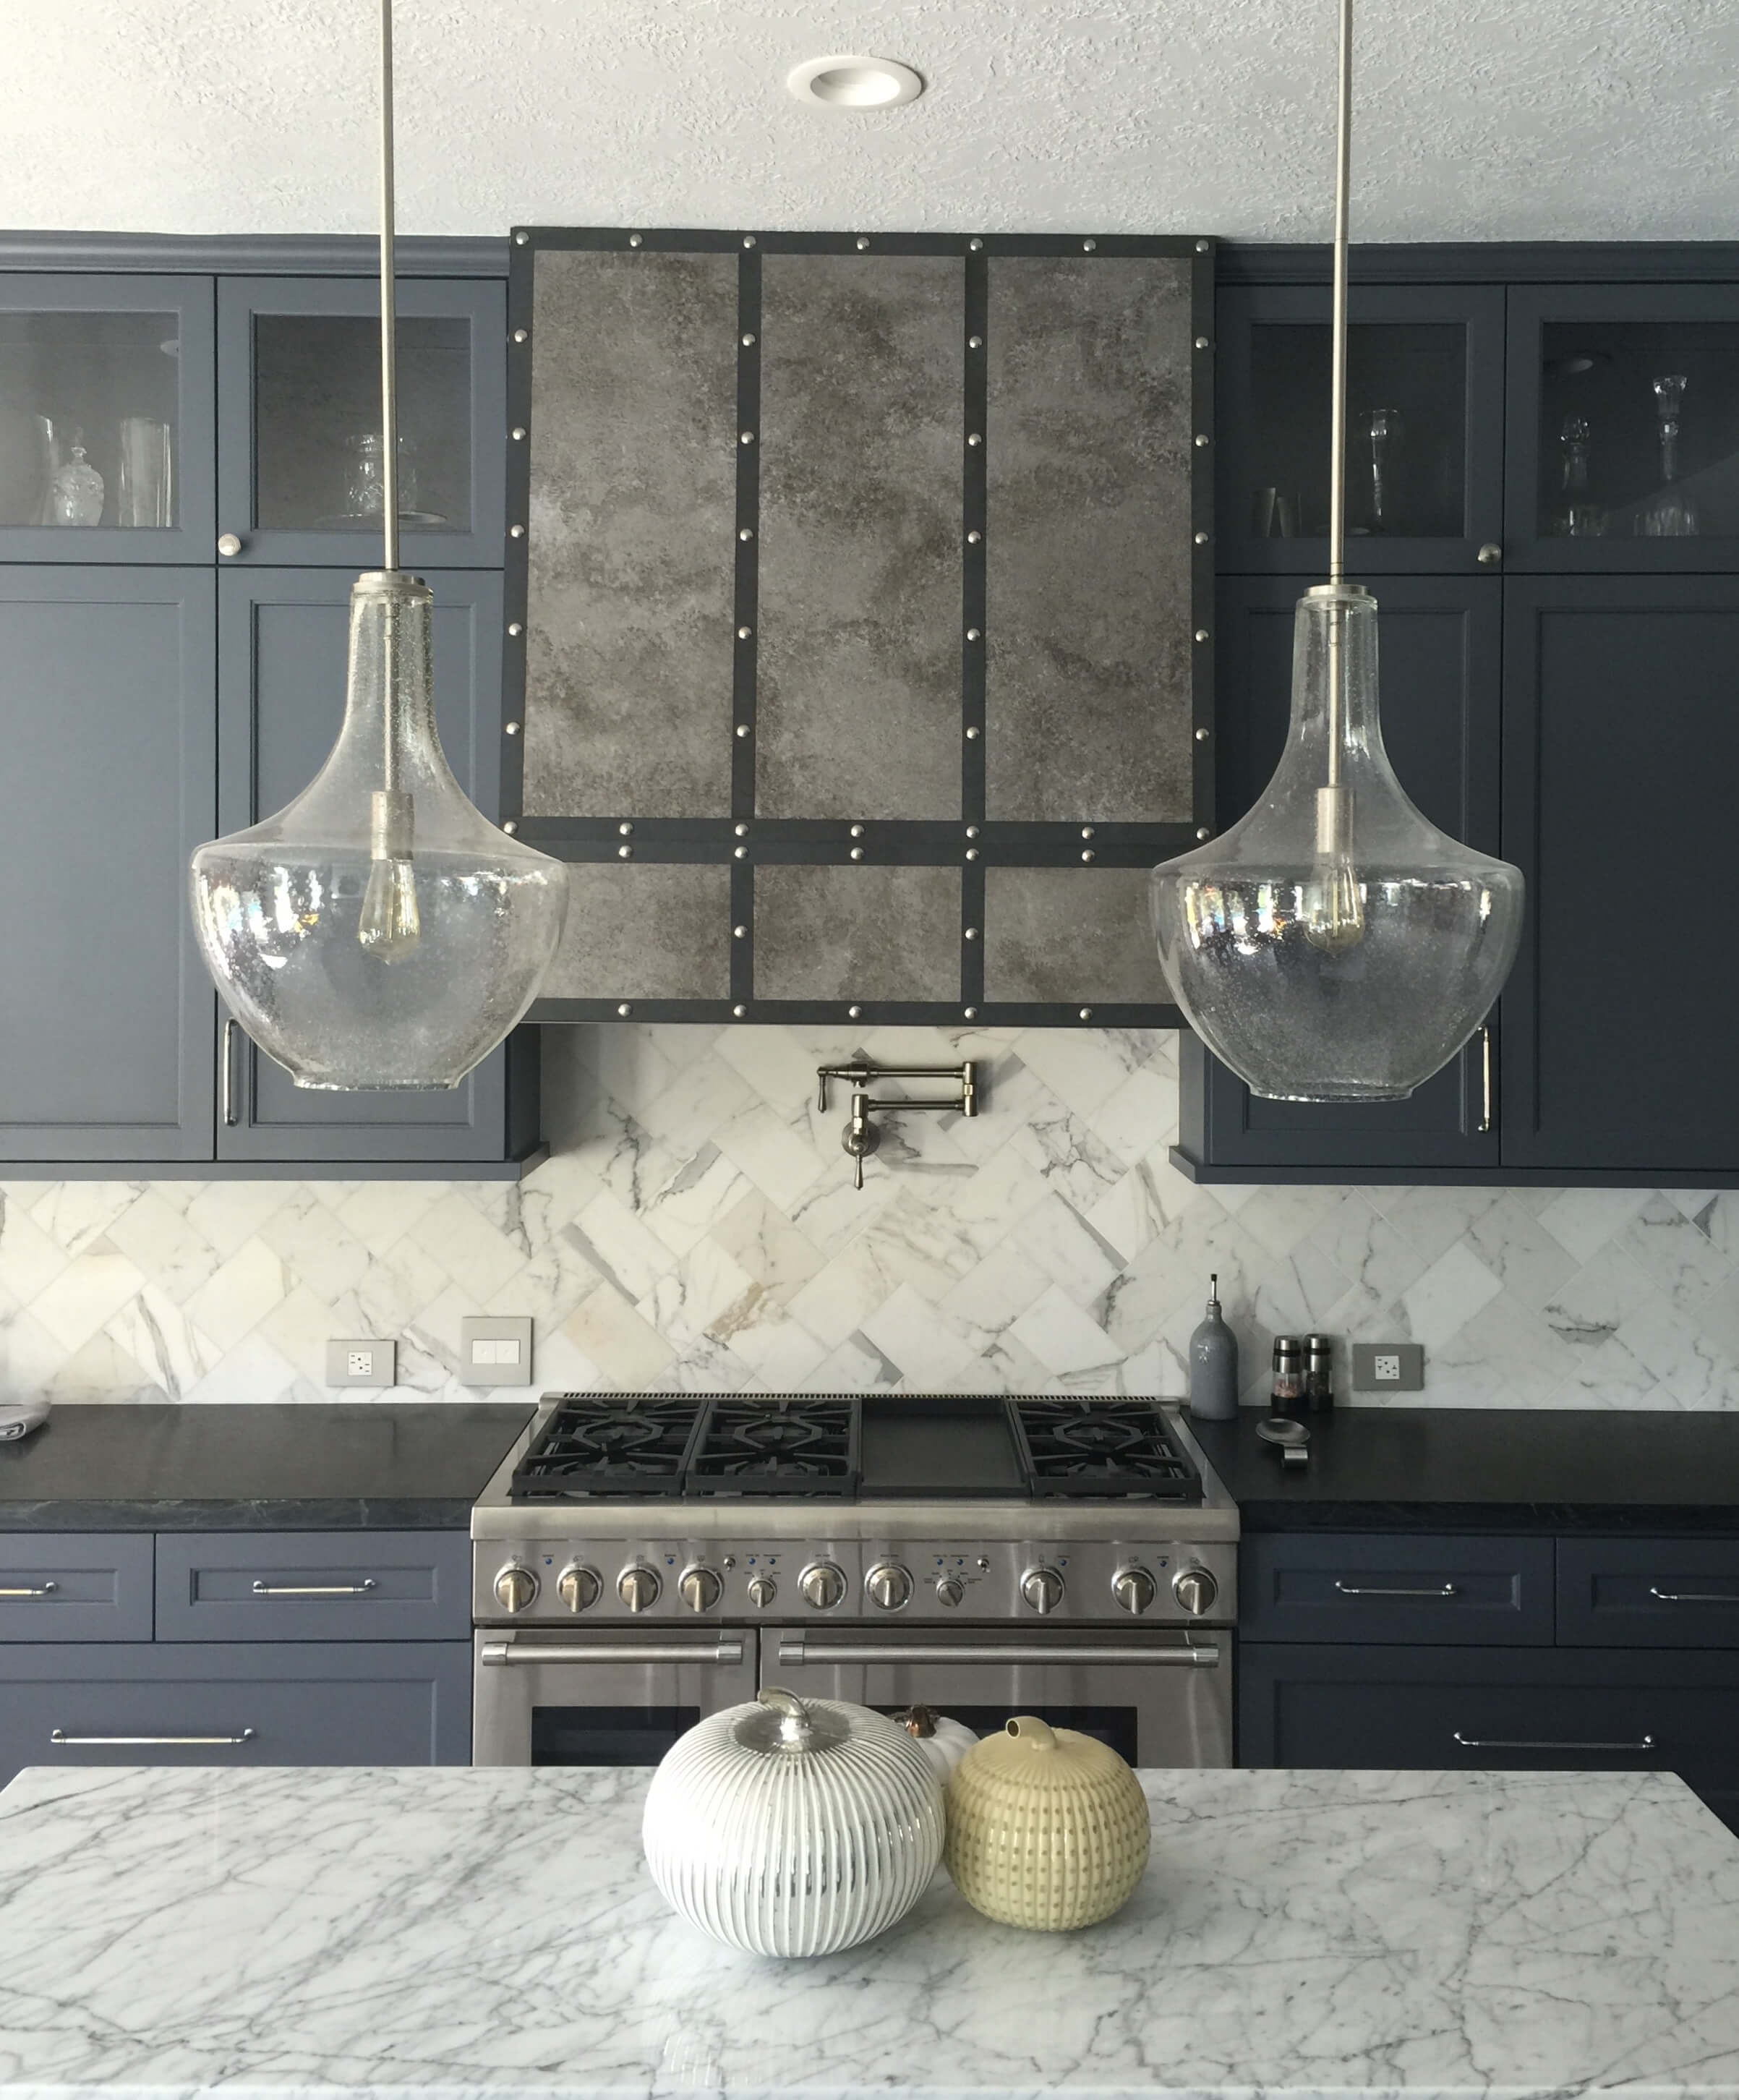 White Carrera Marble Kitchen Countertops When To Use A Natural Stone Backsplash And When Not To Designed